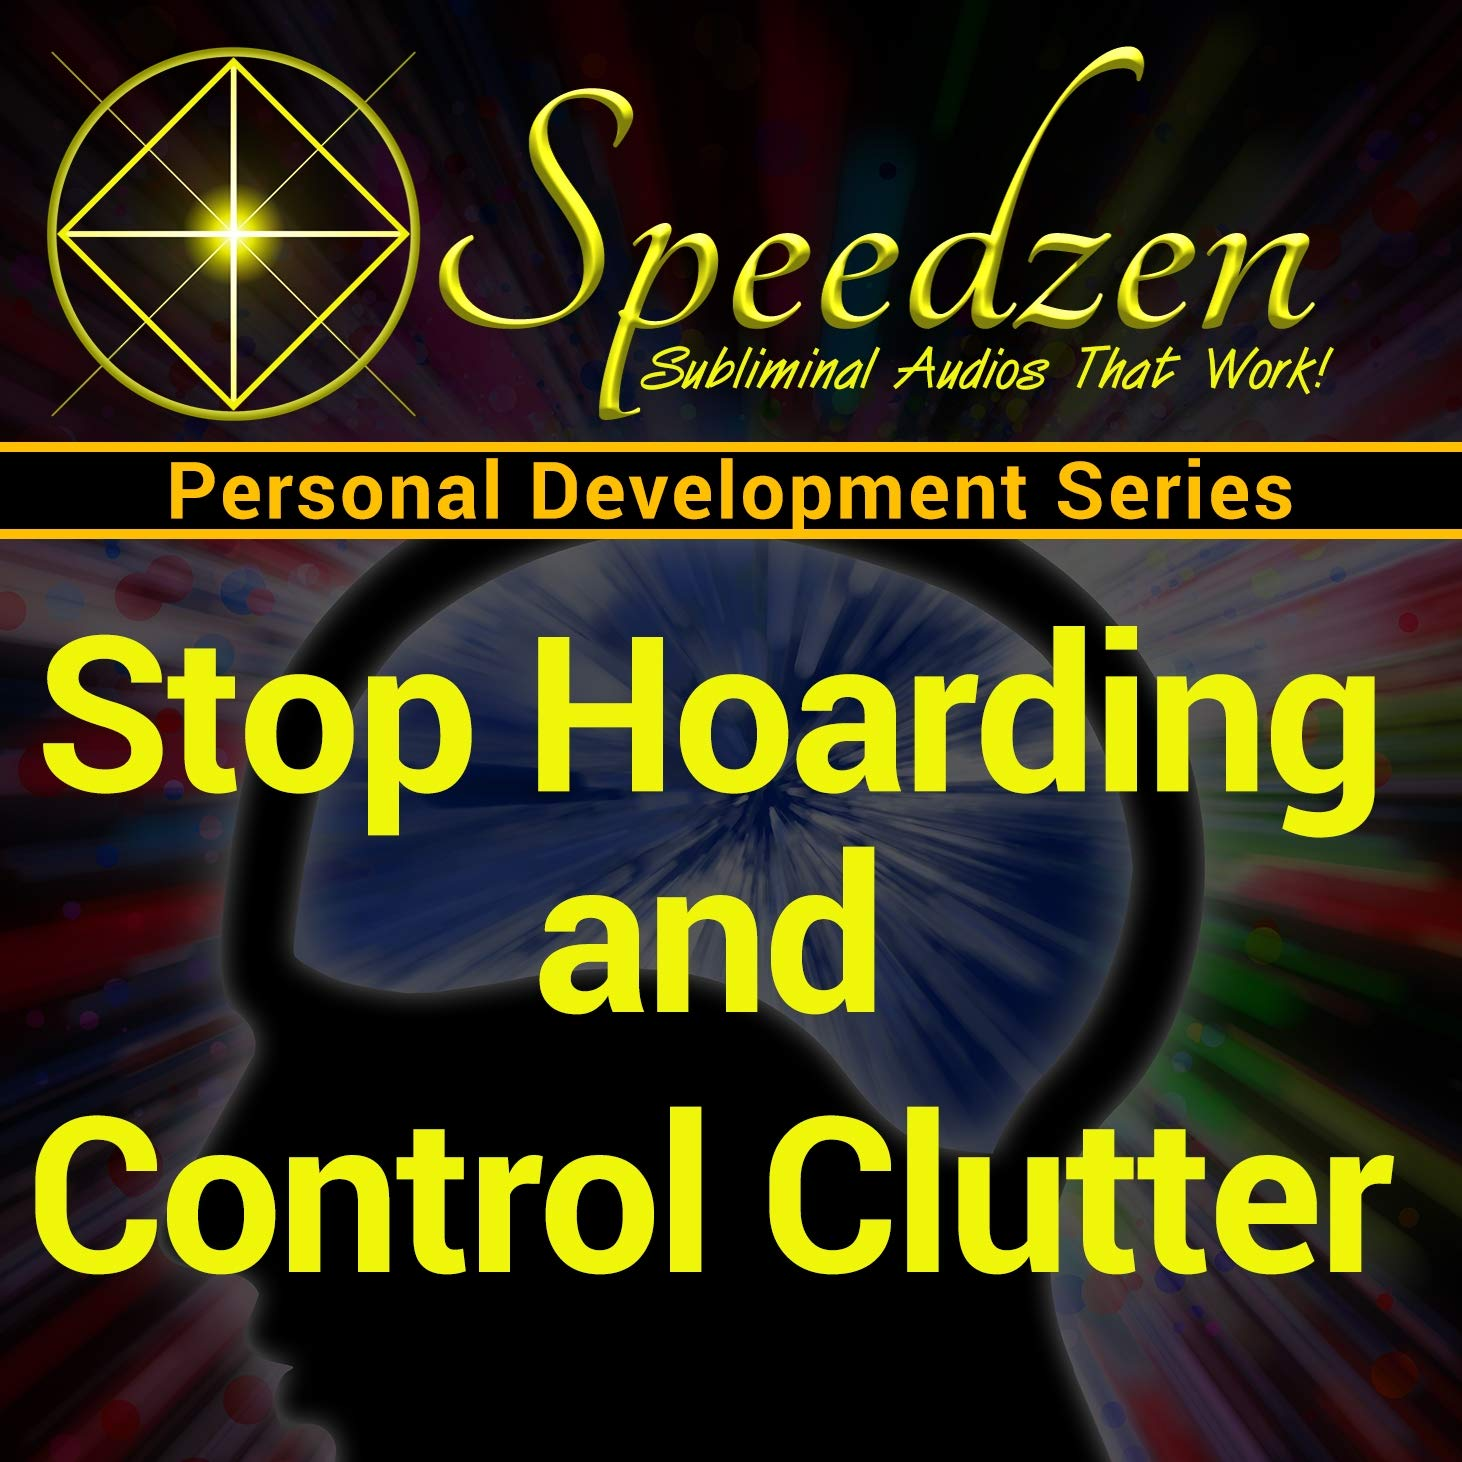 Stop Hoarding & Control Clutter: Subliminal Hypnosis with Binaural Beats by Speedzen Publishing